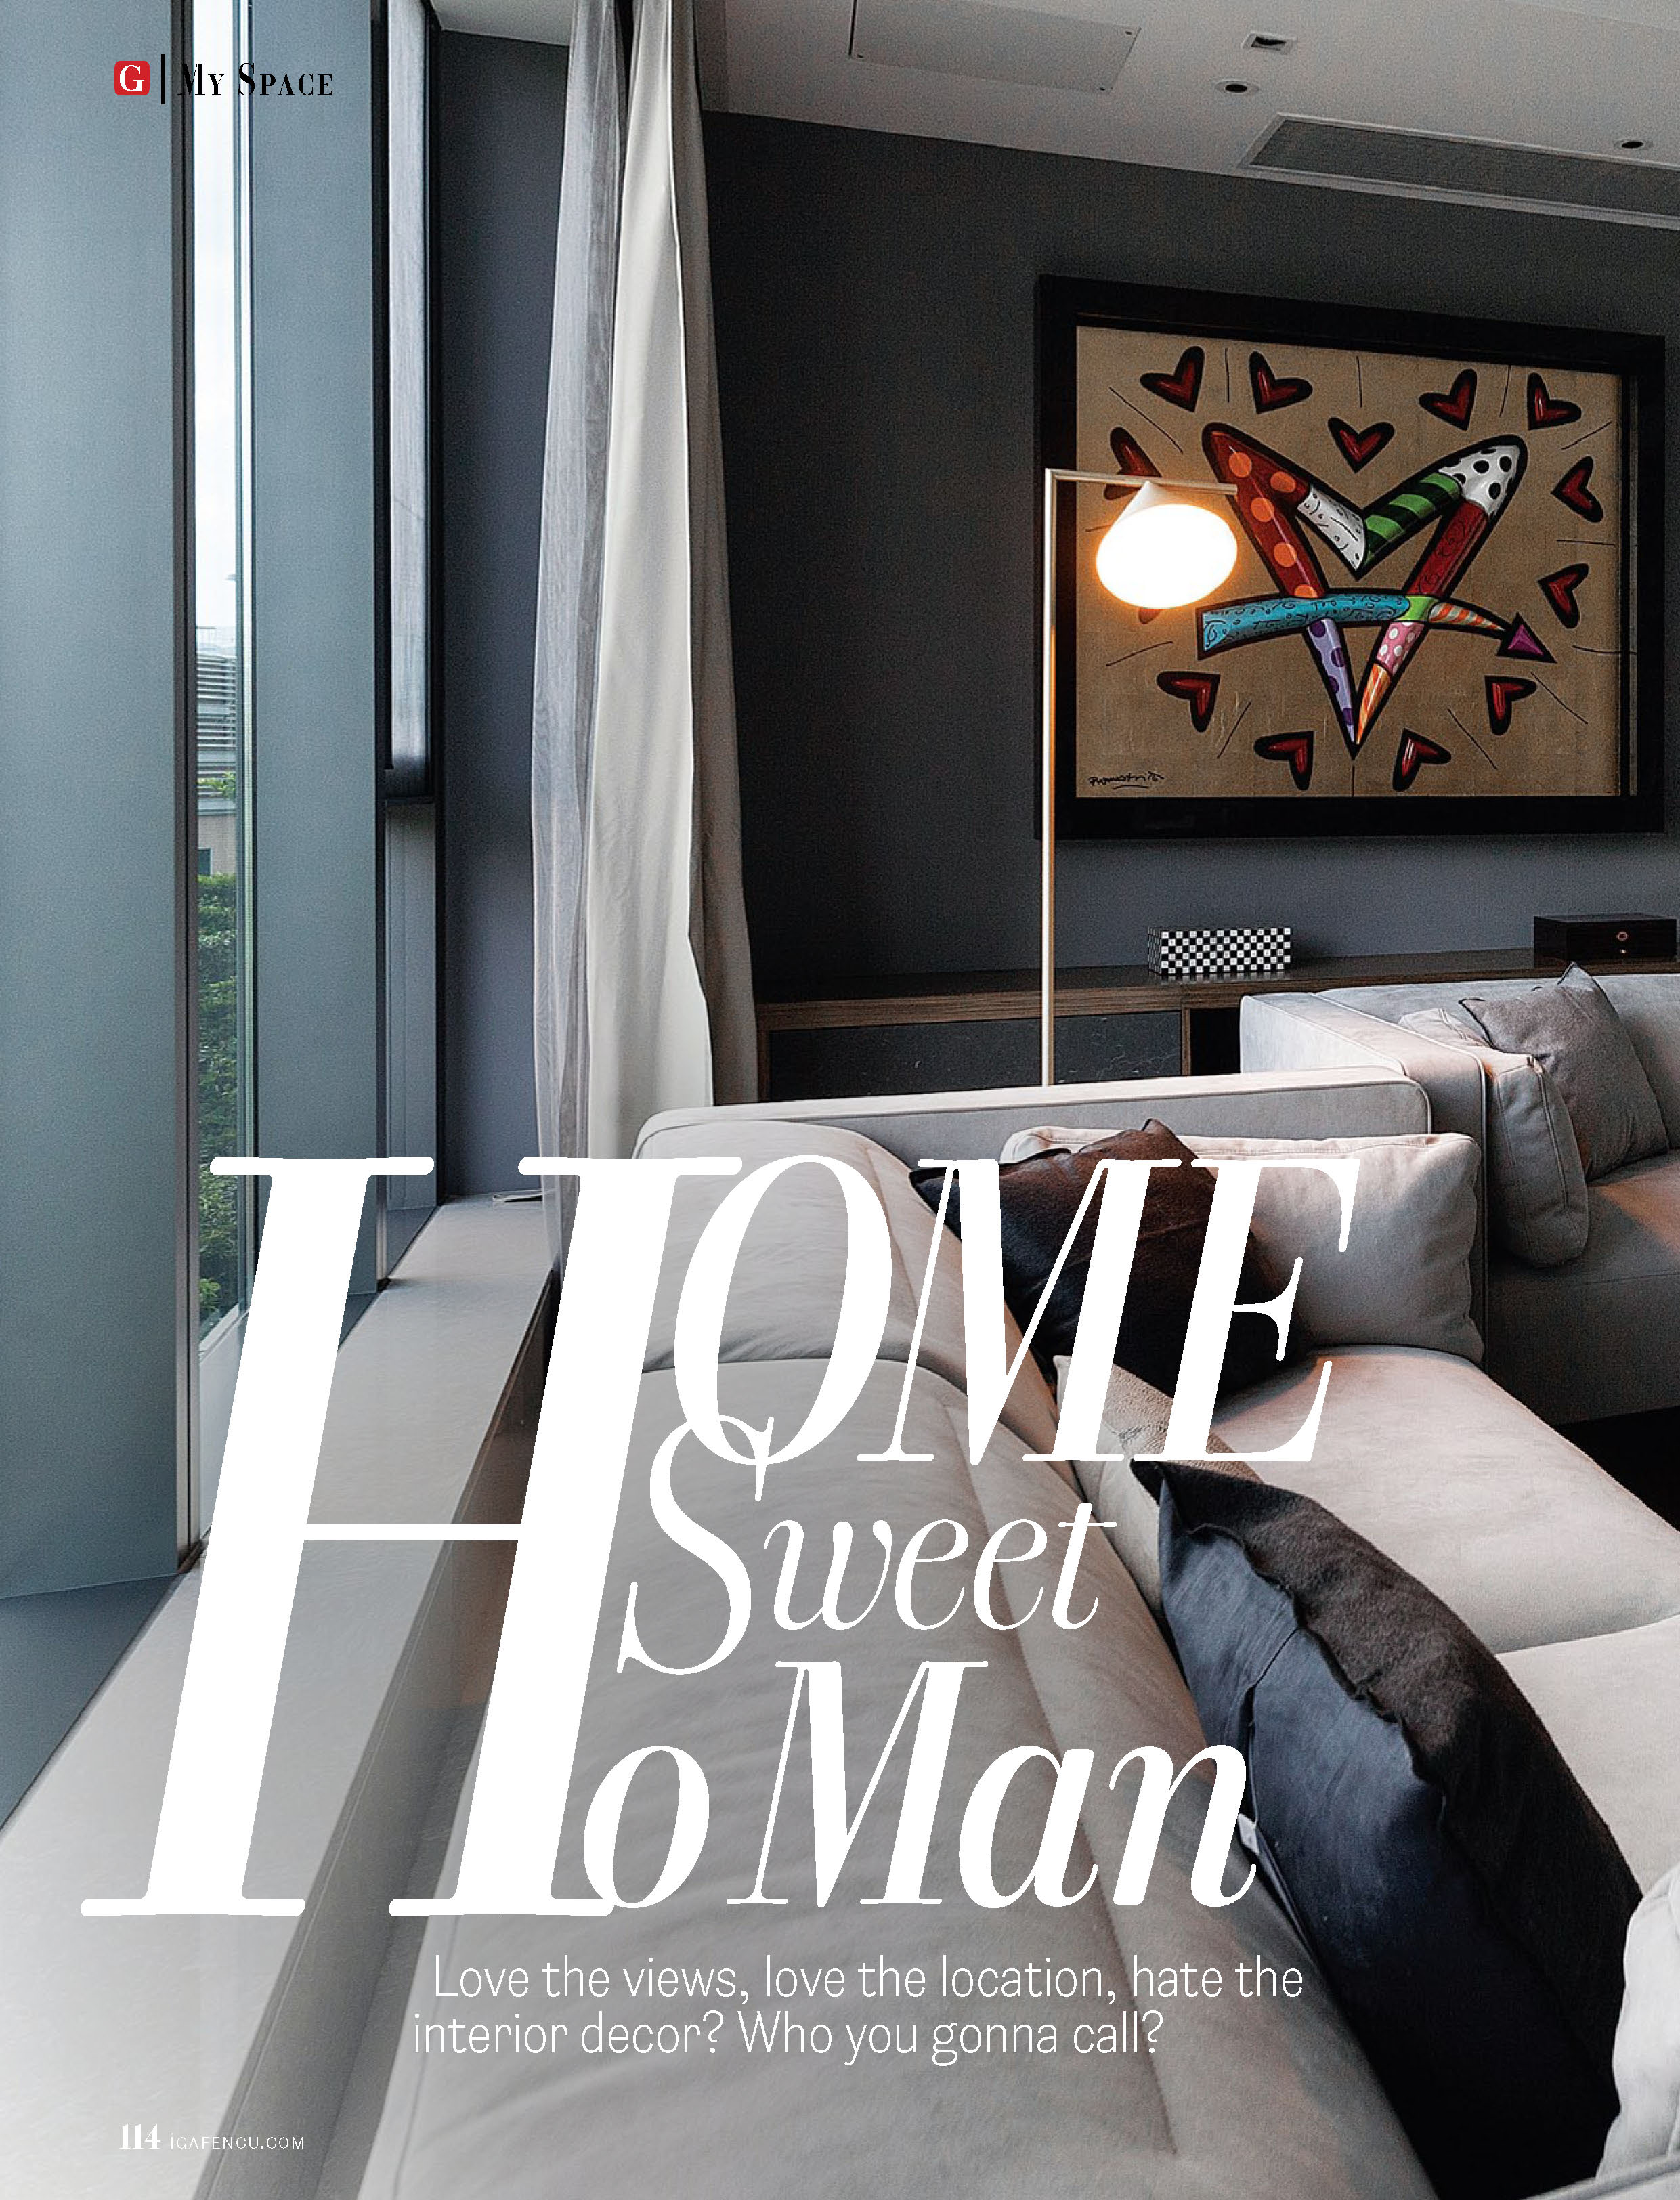 Hotel Style Home | Gafencu | March 2019 Issue